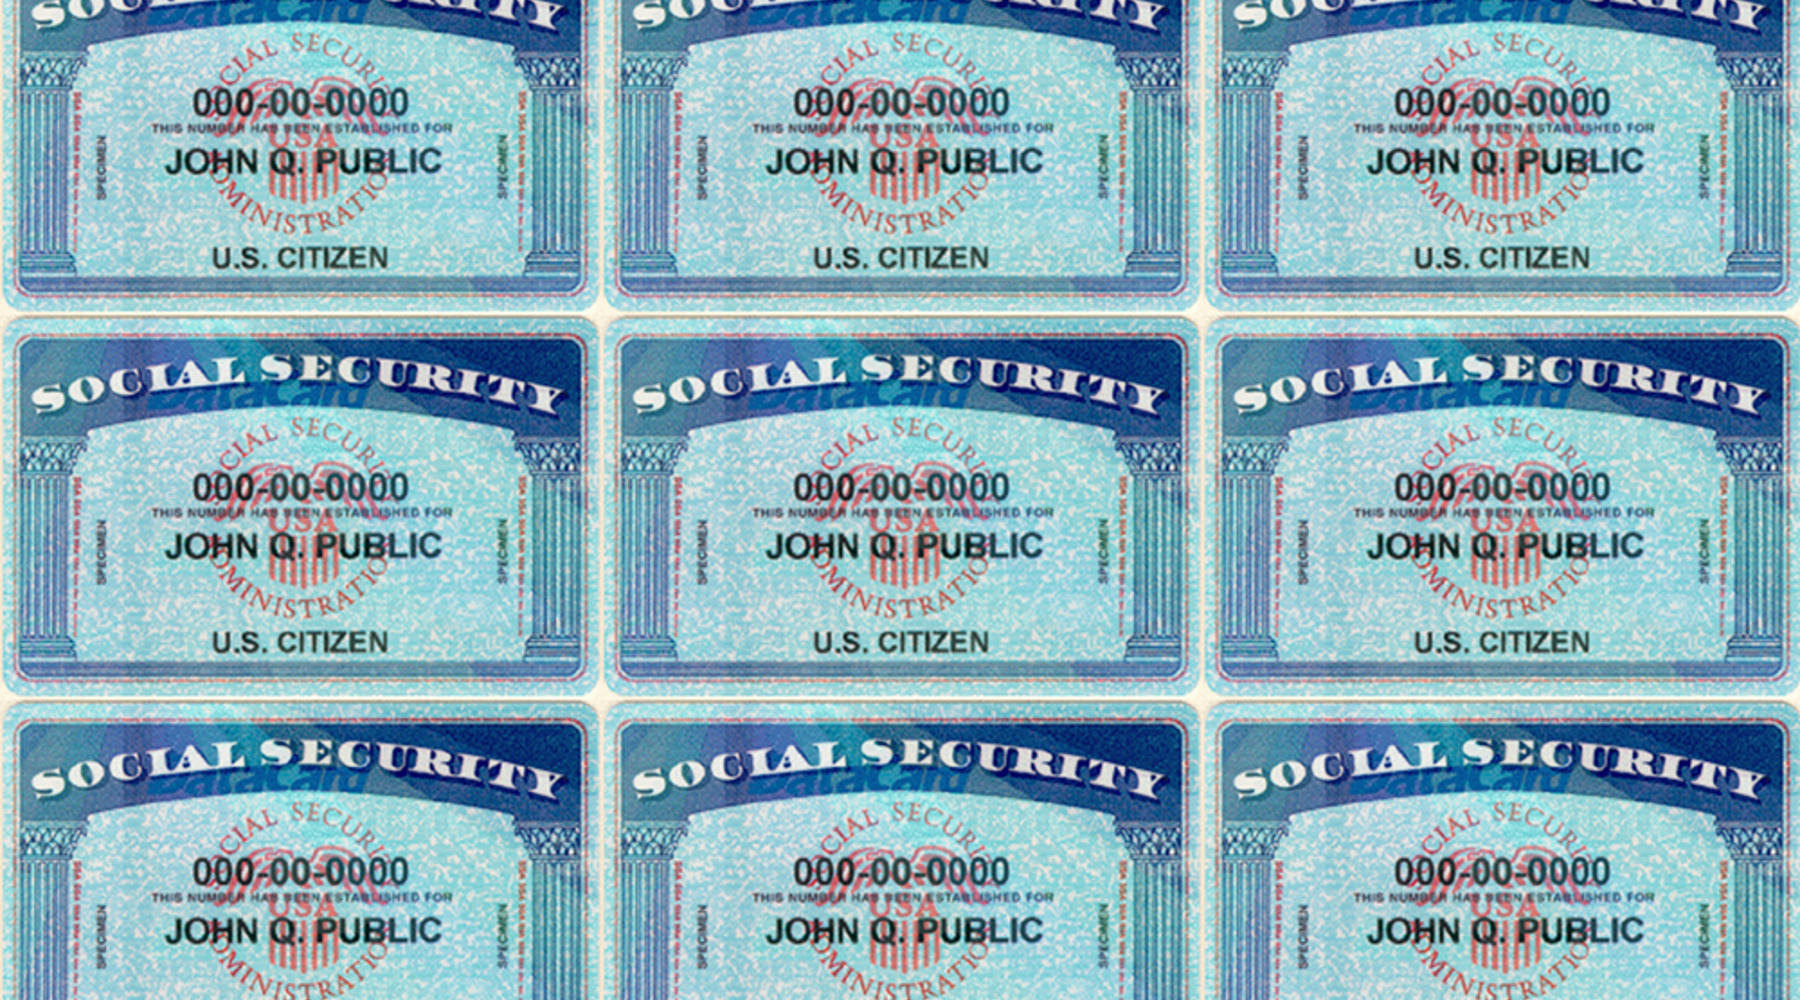 Our Social Security system is in even worse shape than we